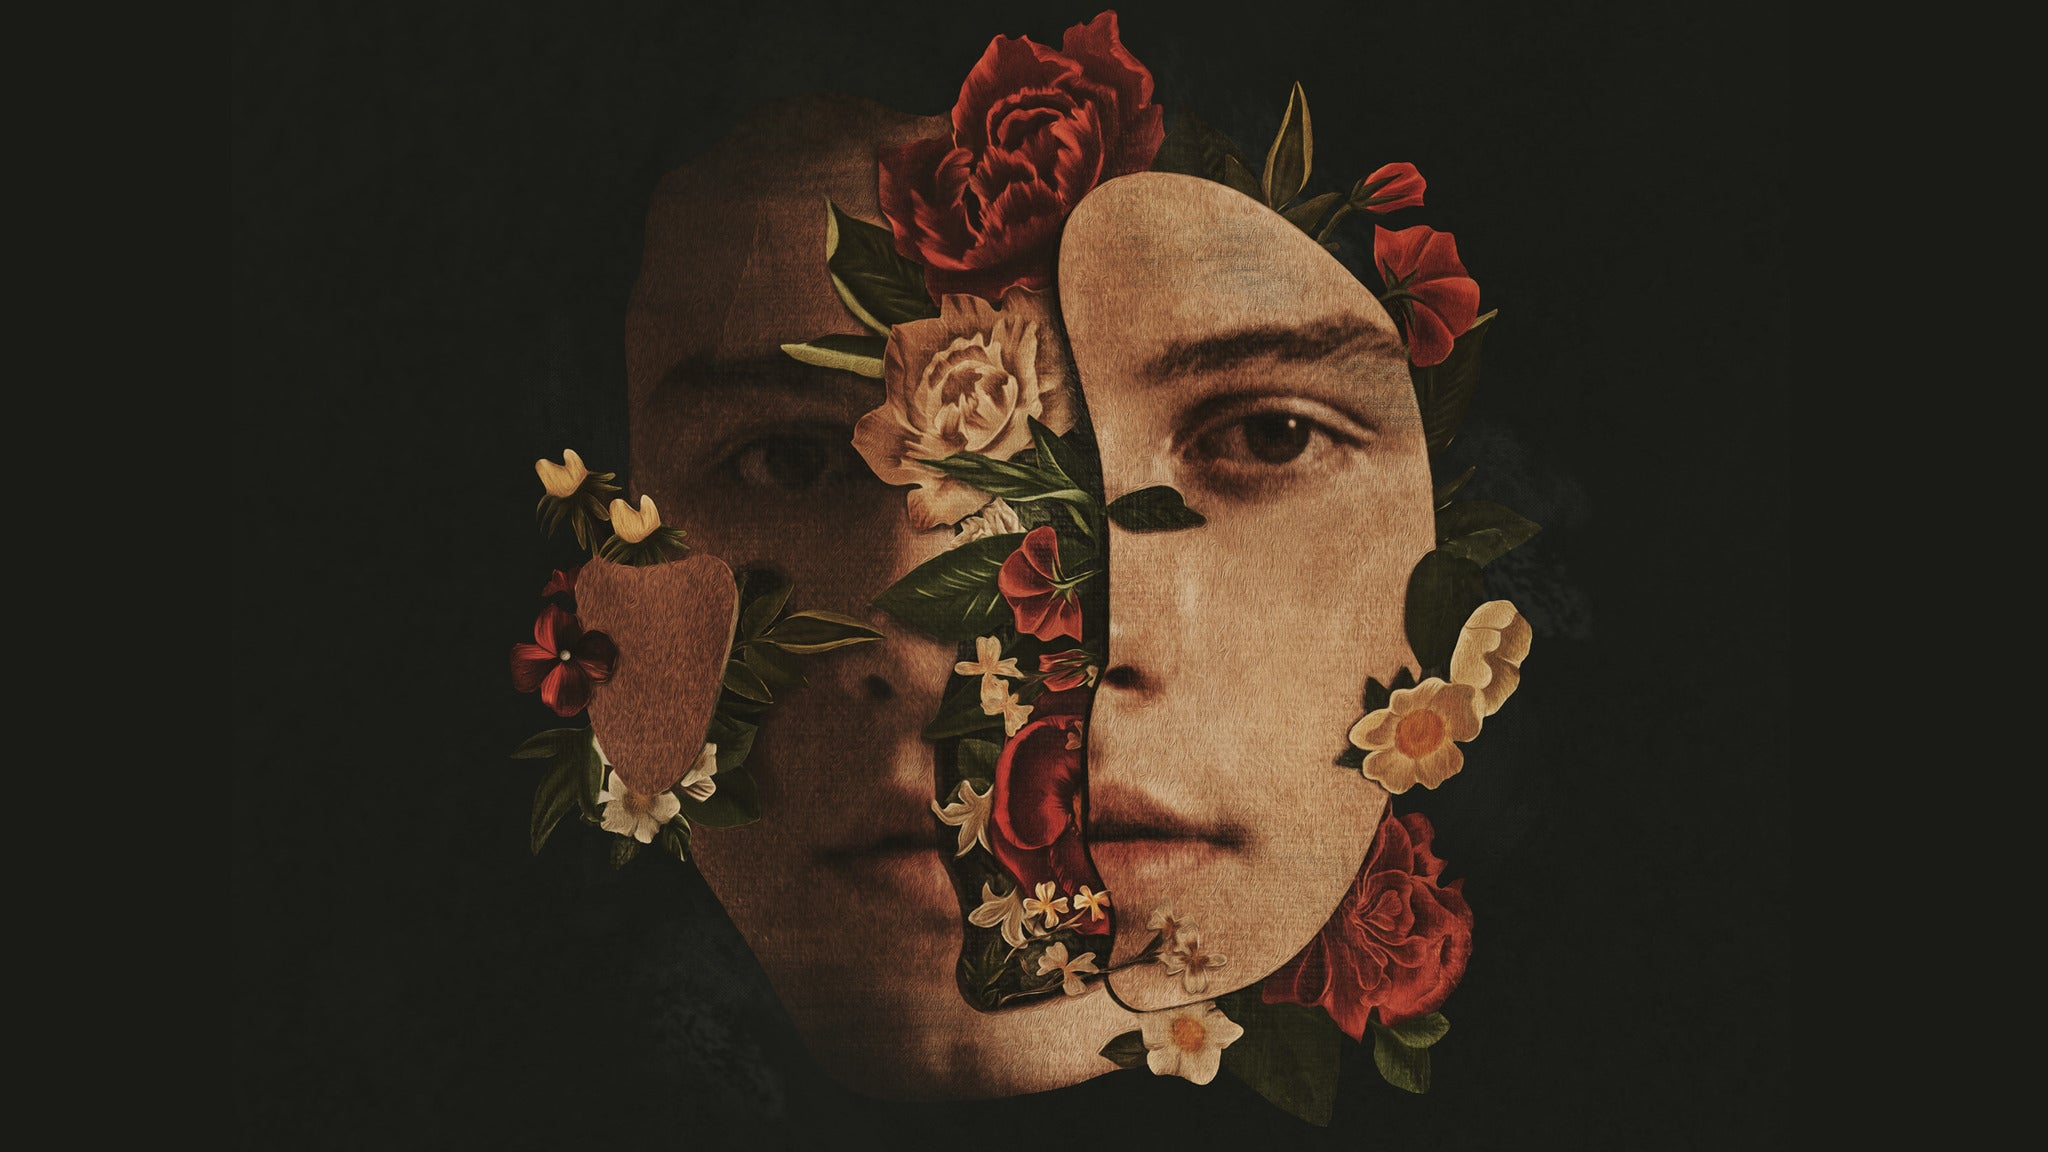 Tickets | SHAWN MENDES: THE TOUR - Boston, MA at Ticketmaster